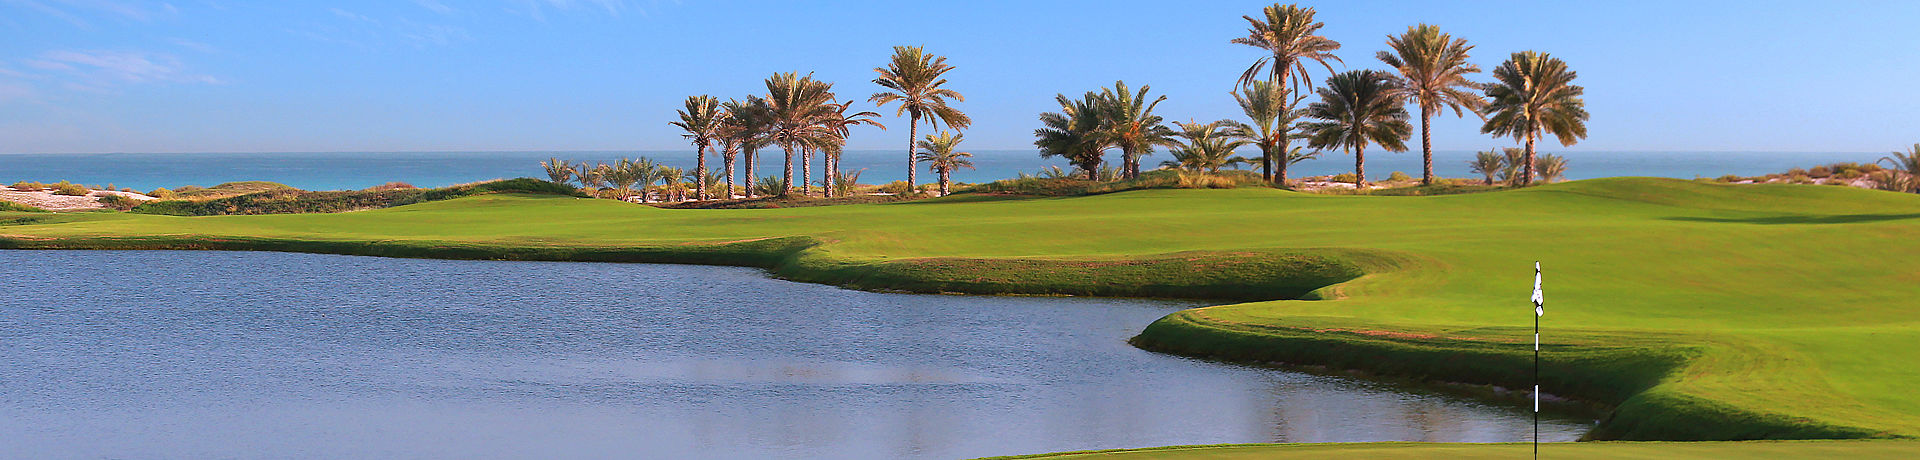 Saadiyat Beach Golf Club bei Abu Dhabi